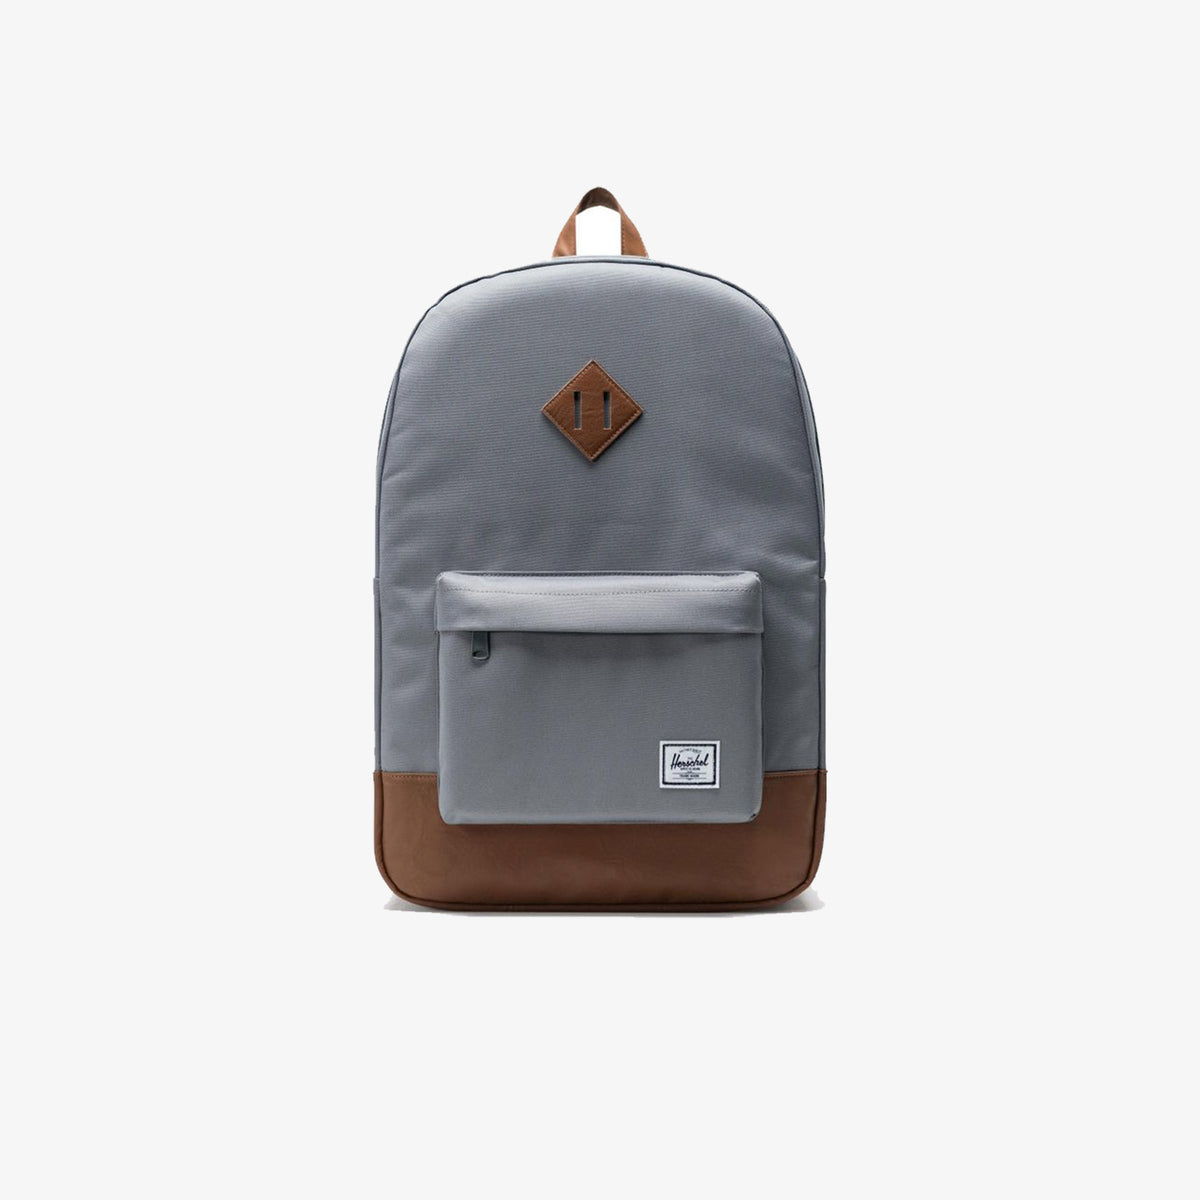 Heritage Backpack - Grey/Tan